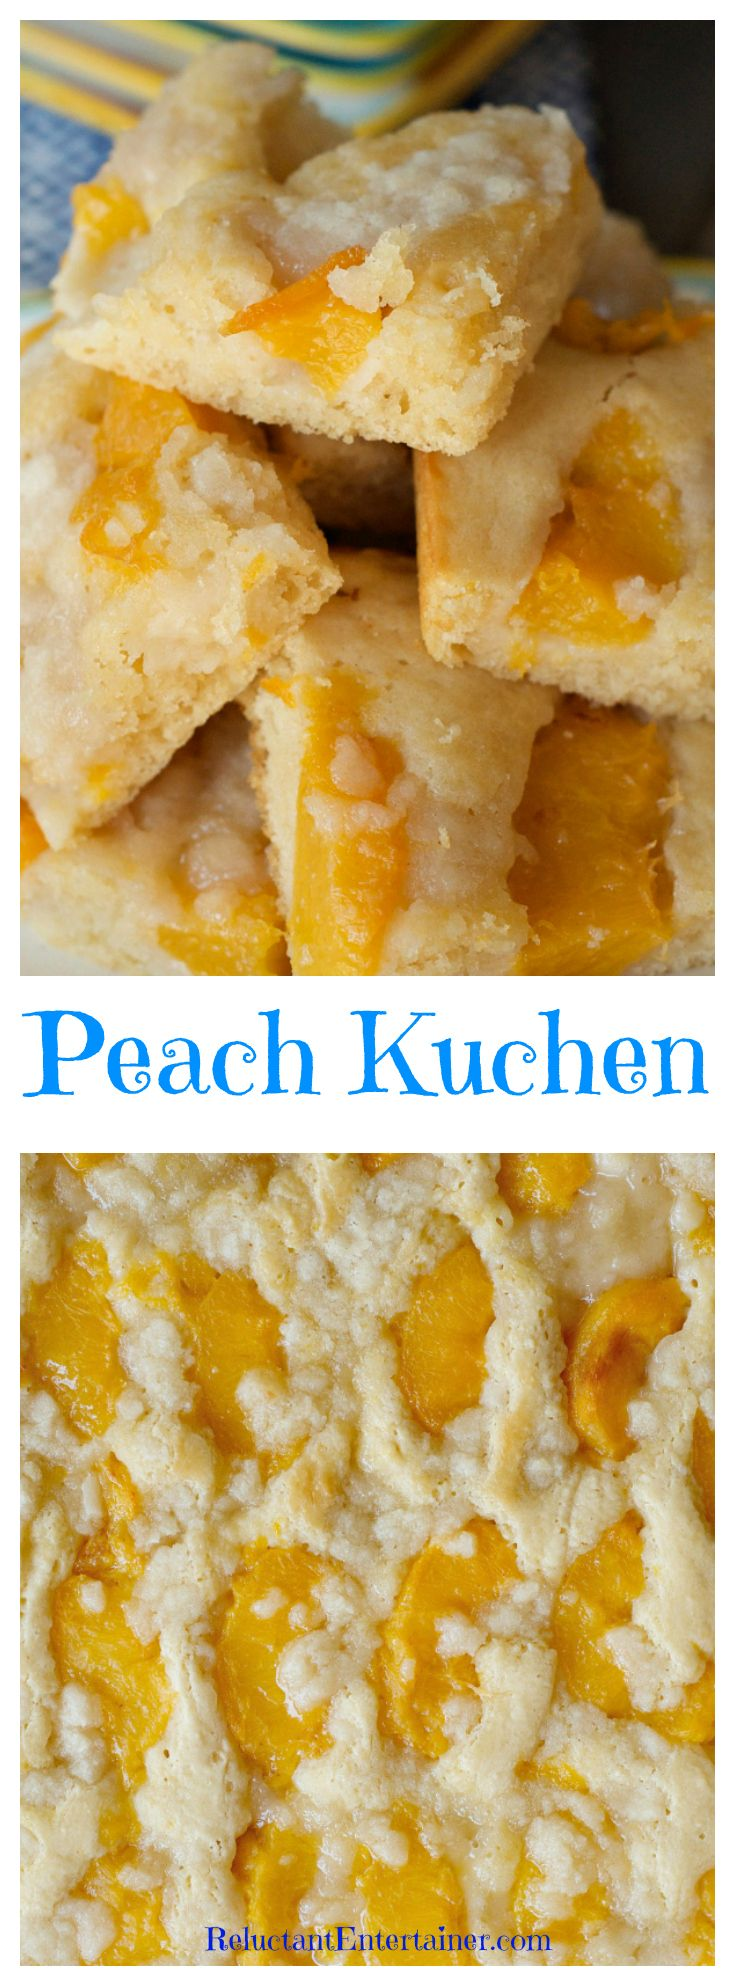 Peach Kuchen                                                                                                                                                                                 More